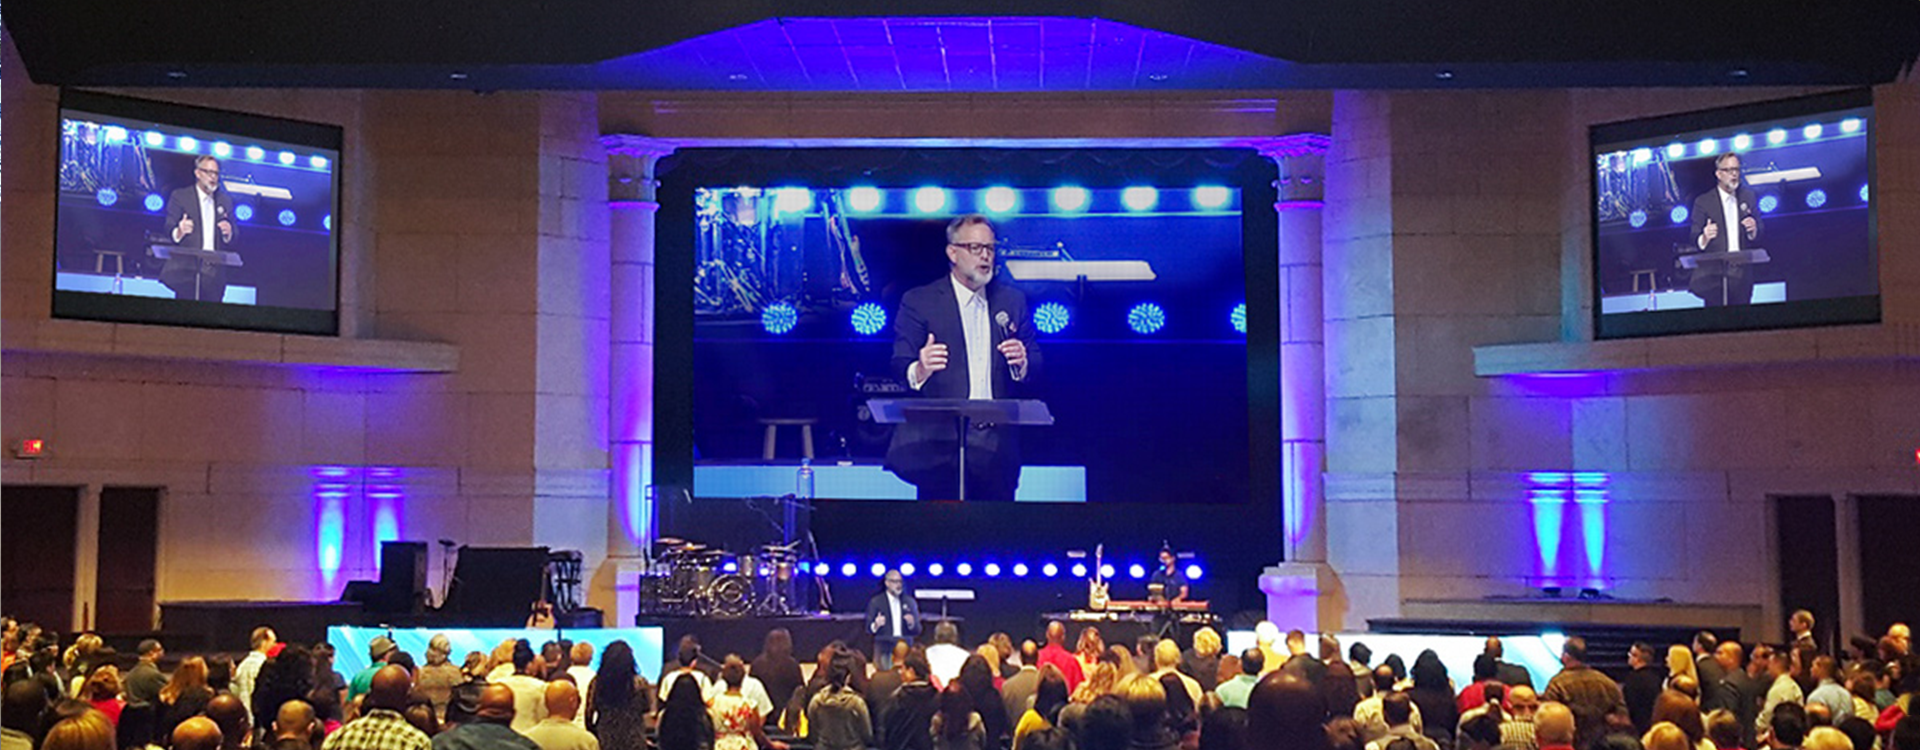 Pastor being displayed on a large High Resolution Church LED sign